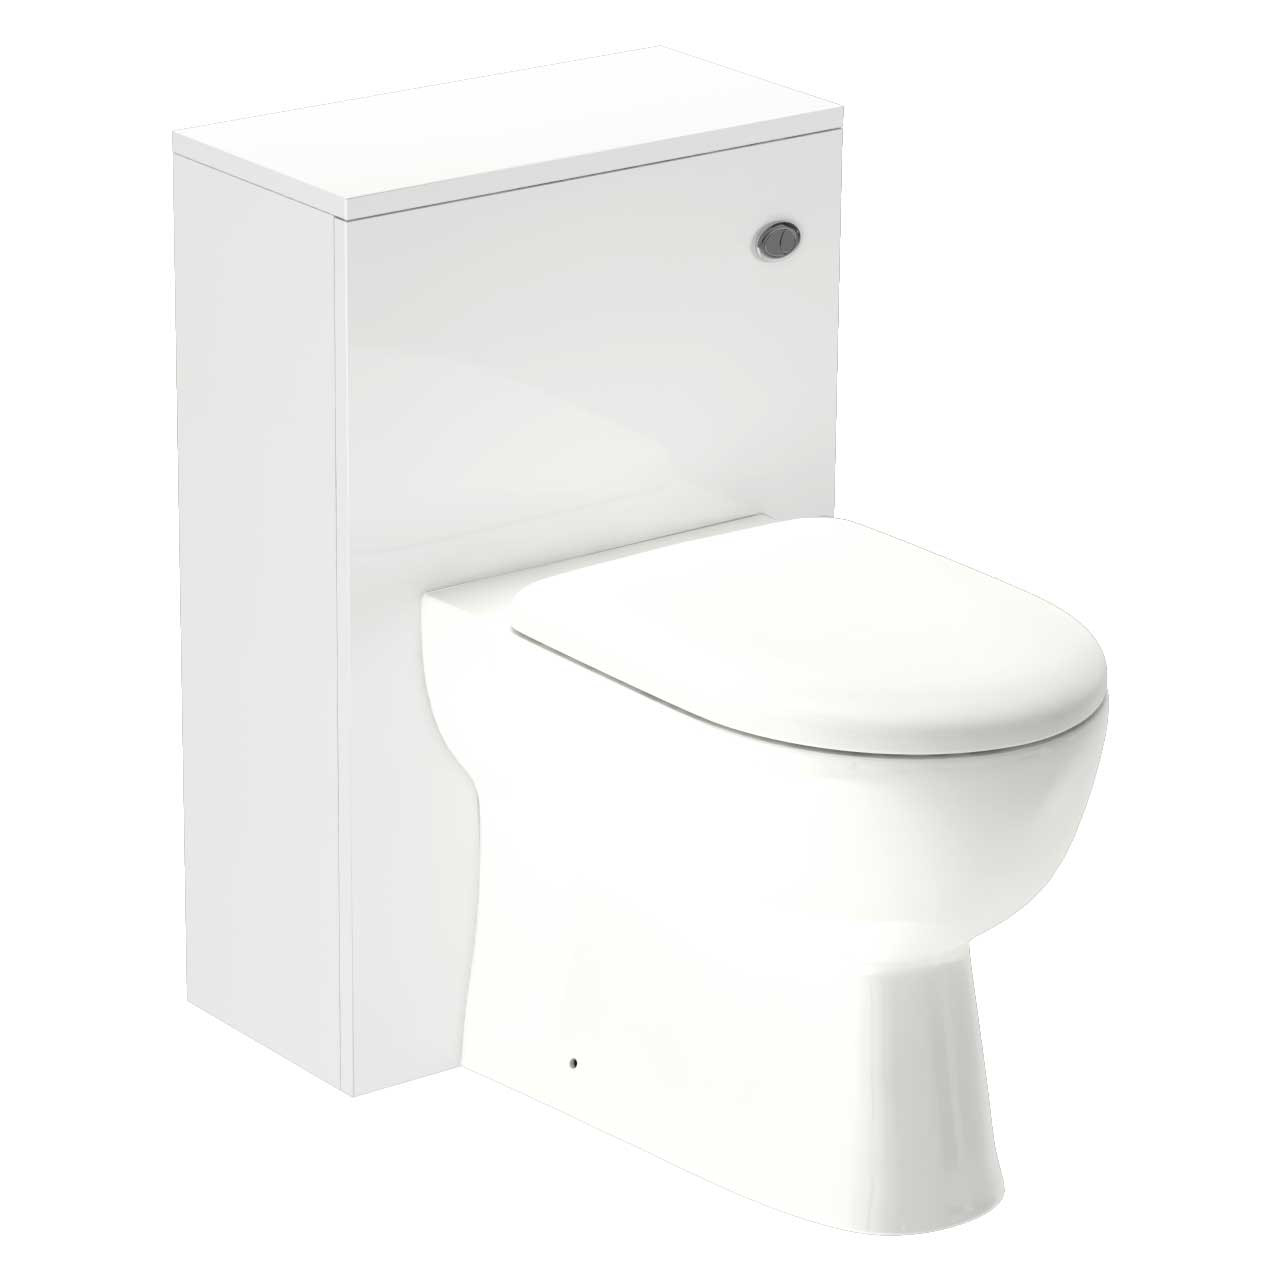 D-Shape Back to Wall Pan & Select 500 WC Unit